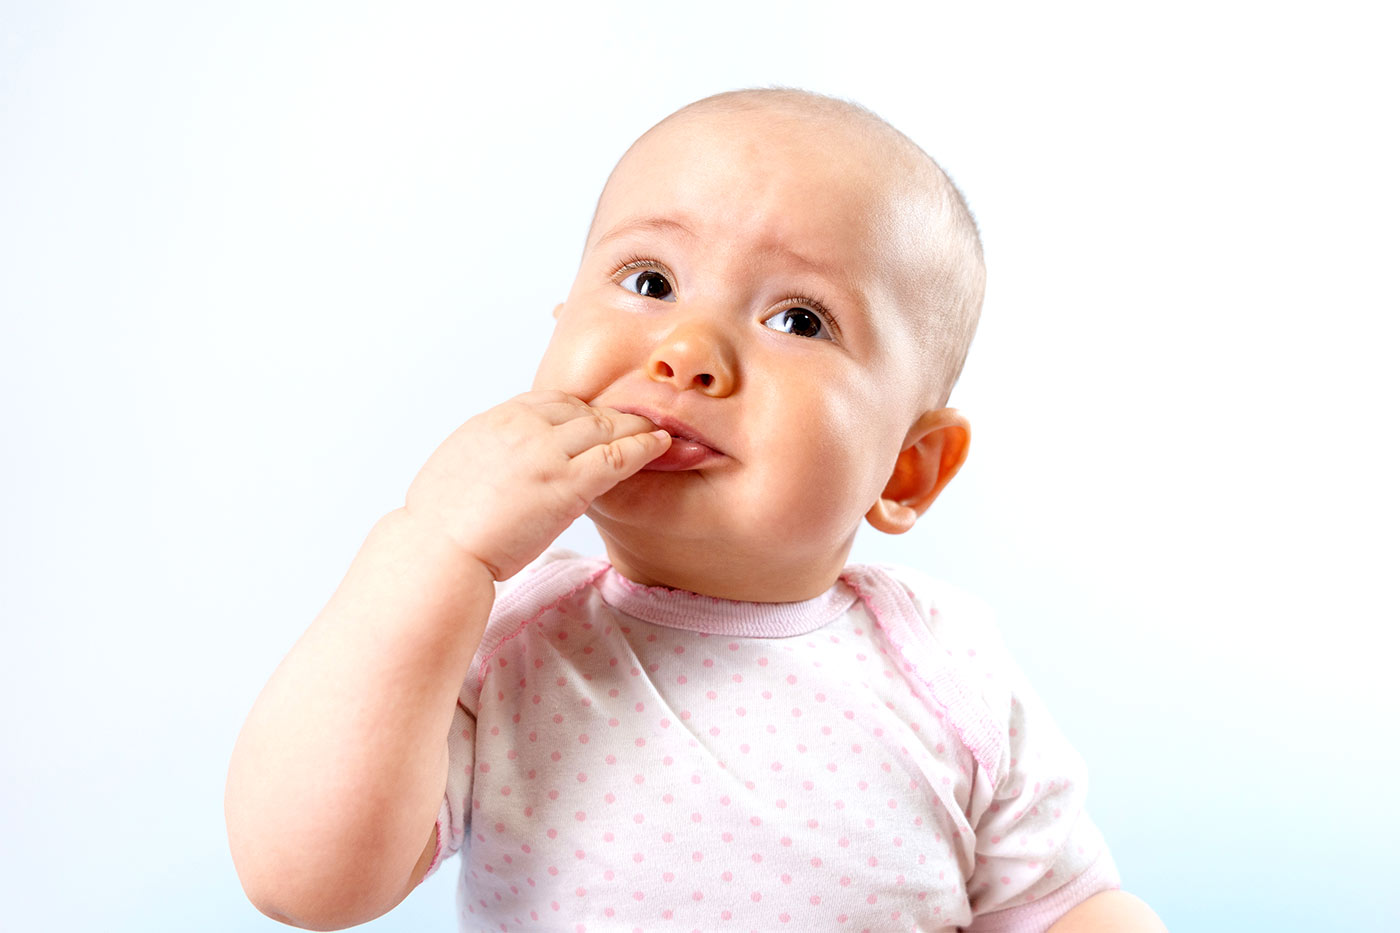 what to do when baby is teething and won't stop crying